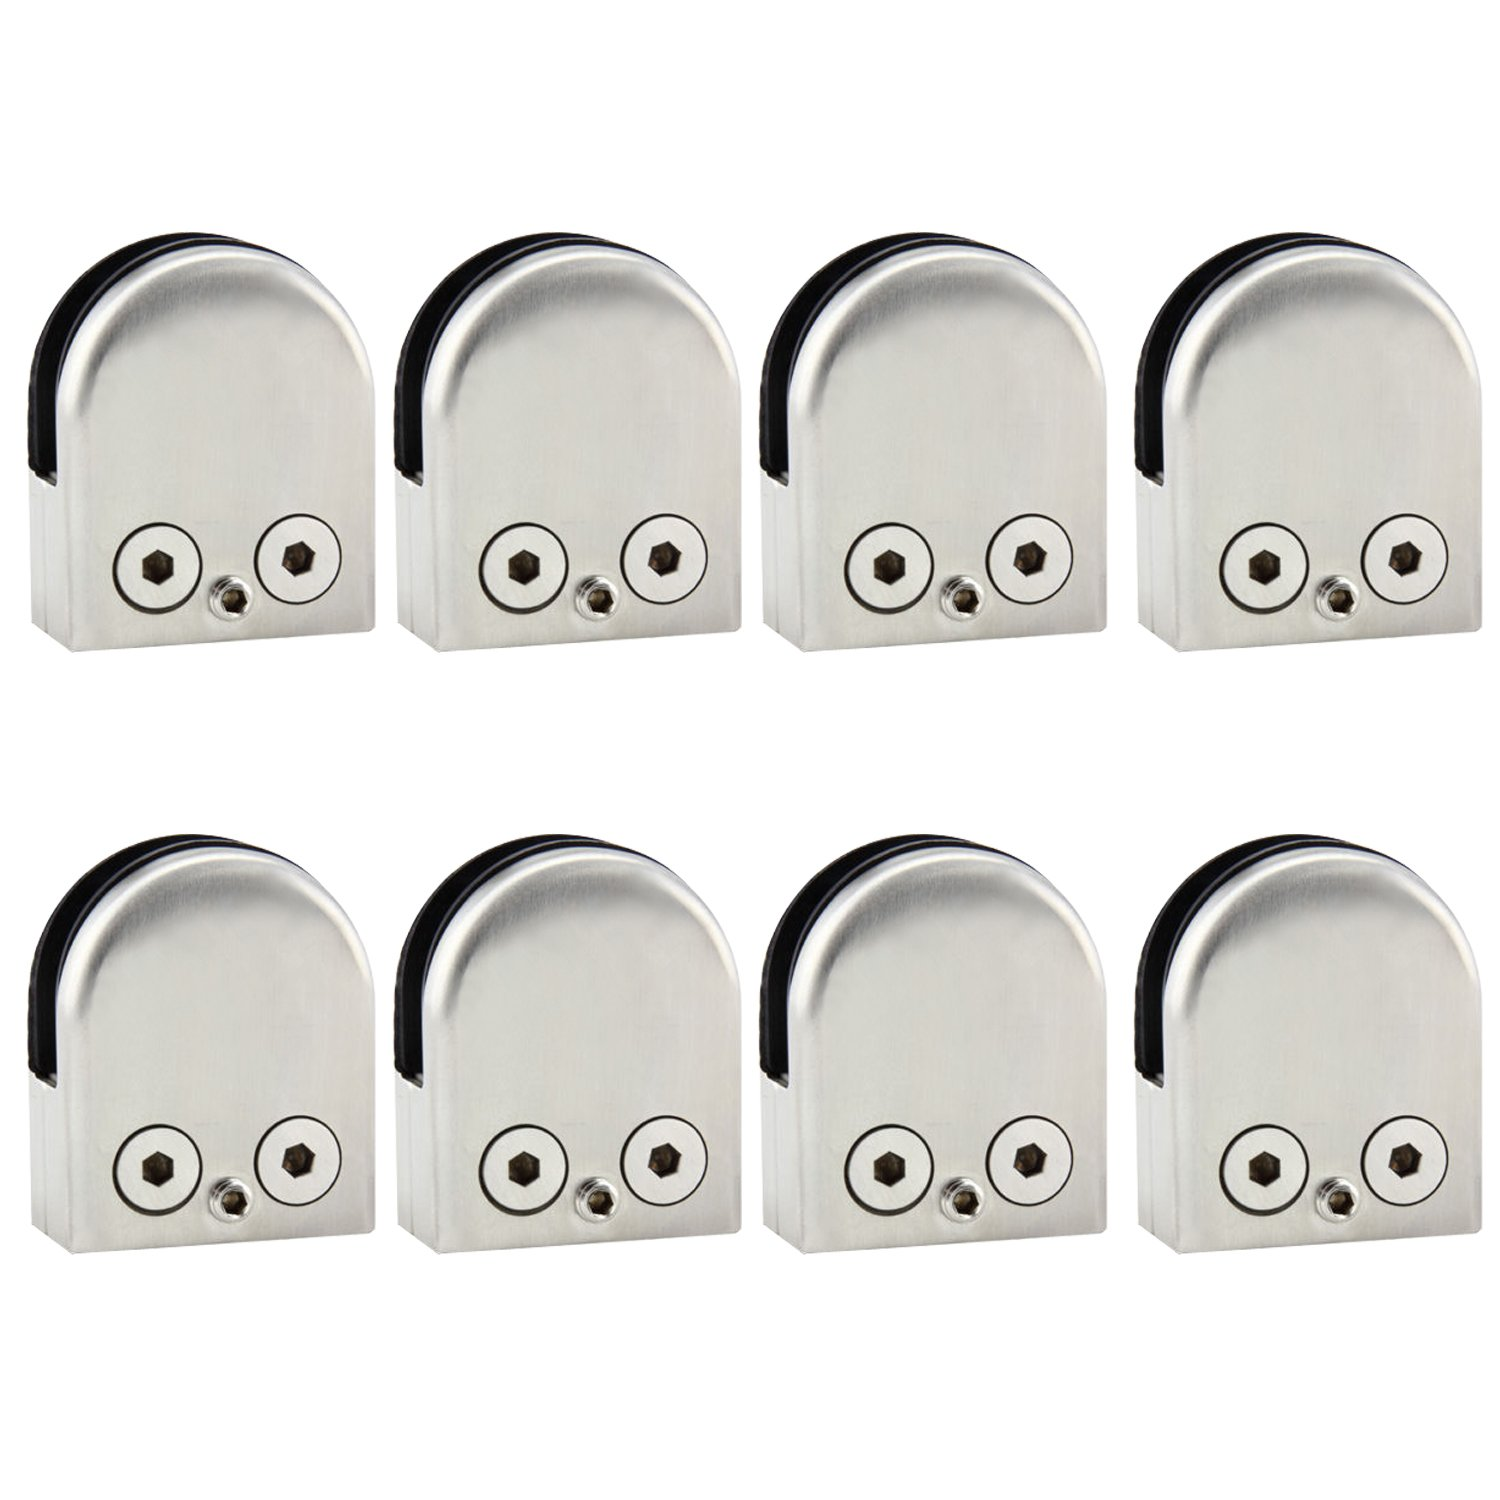 Discoball 8 Pack 304 Stainless Steel 6-8mm Glass Clamp Clip for Window Balustrade Stair Handrail-Upgraded